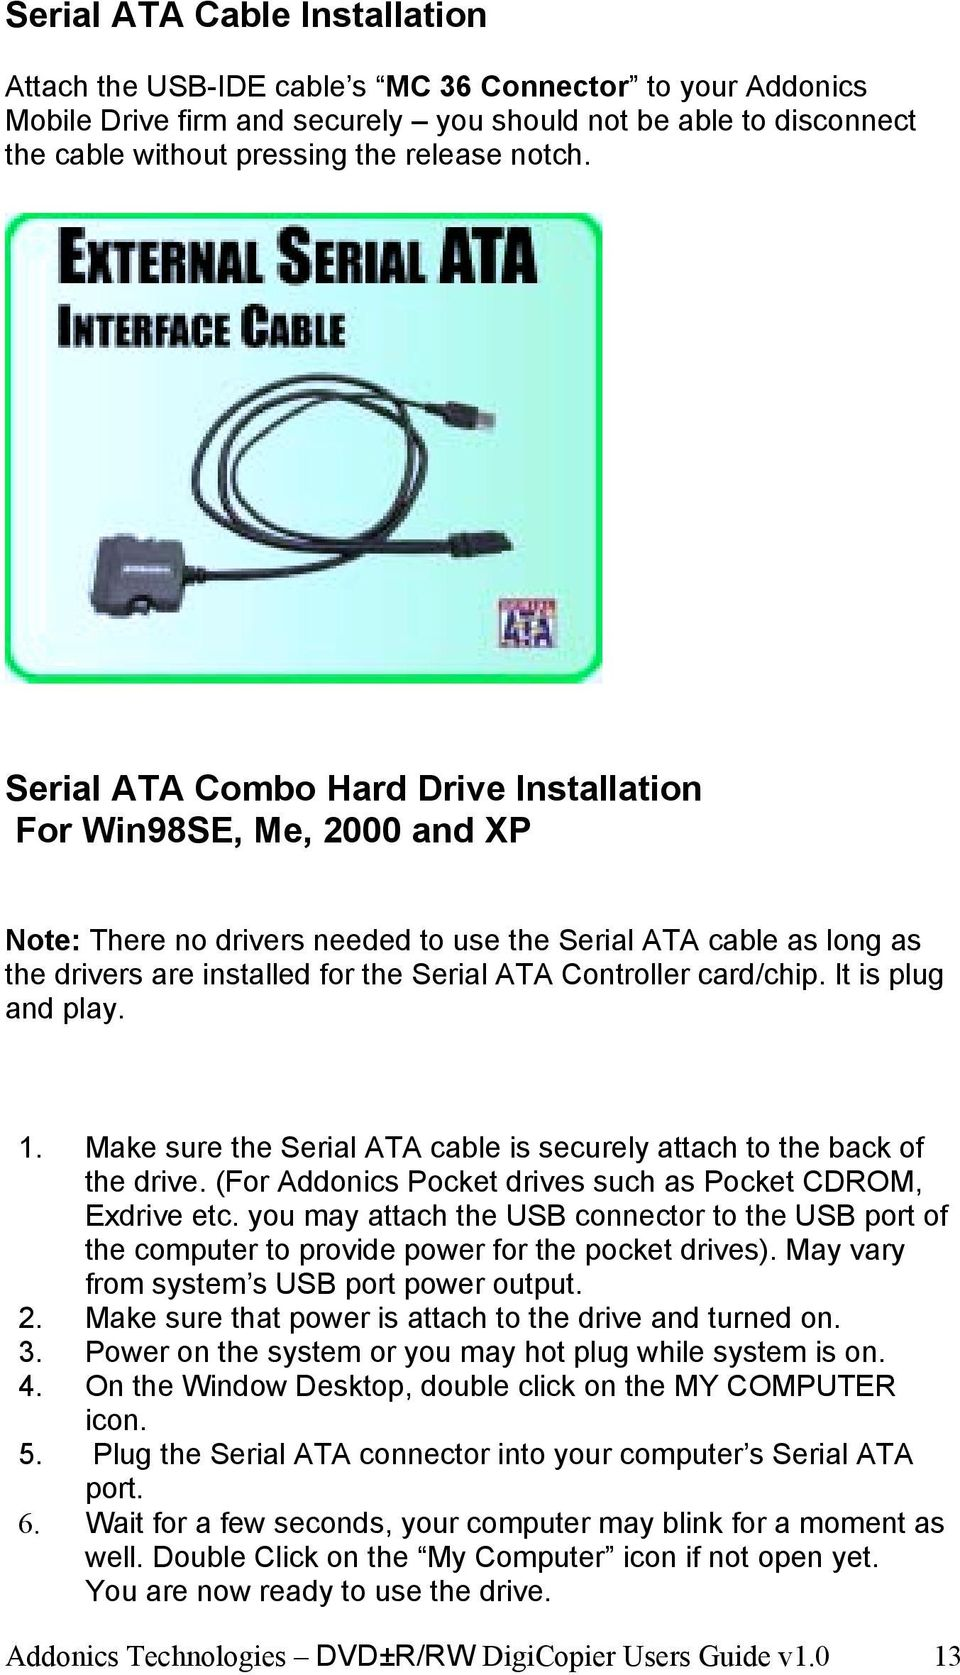 Serial ATA Combo Hard Drive Installation For Win98SE, Me, 2000 and XP Note: There no drivers needed to use the Serial ATA cable as long as the drivers are installed for the Serial ATA Controller